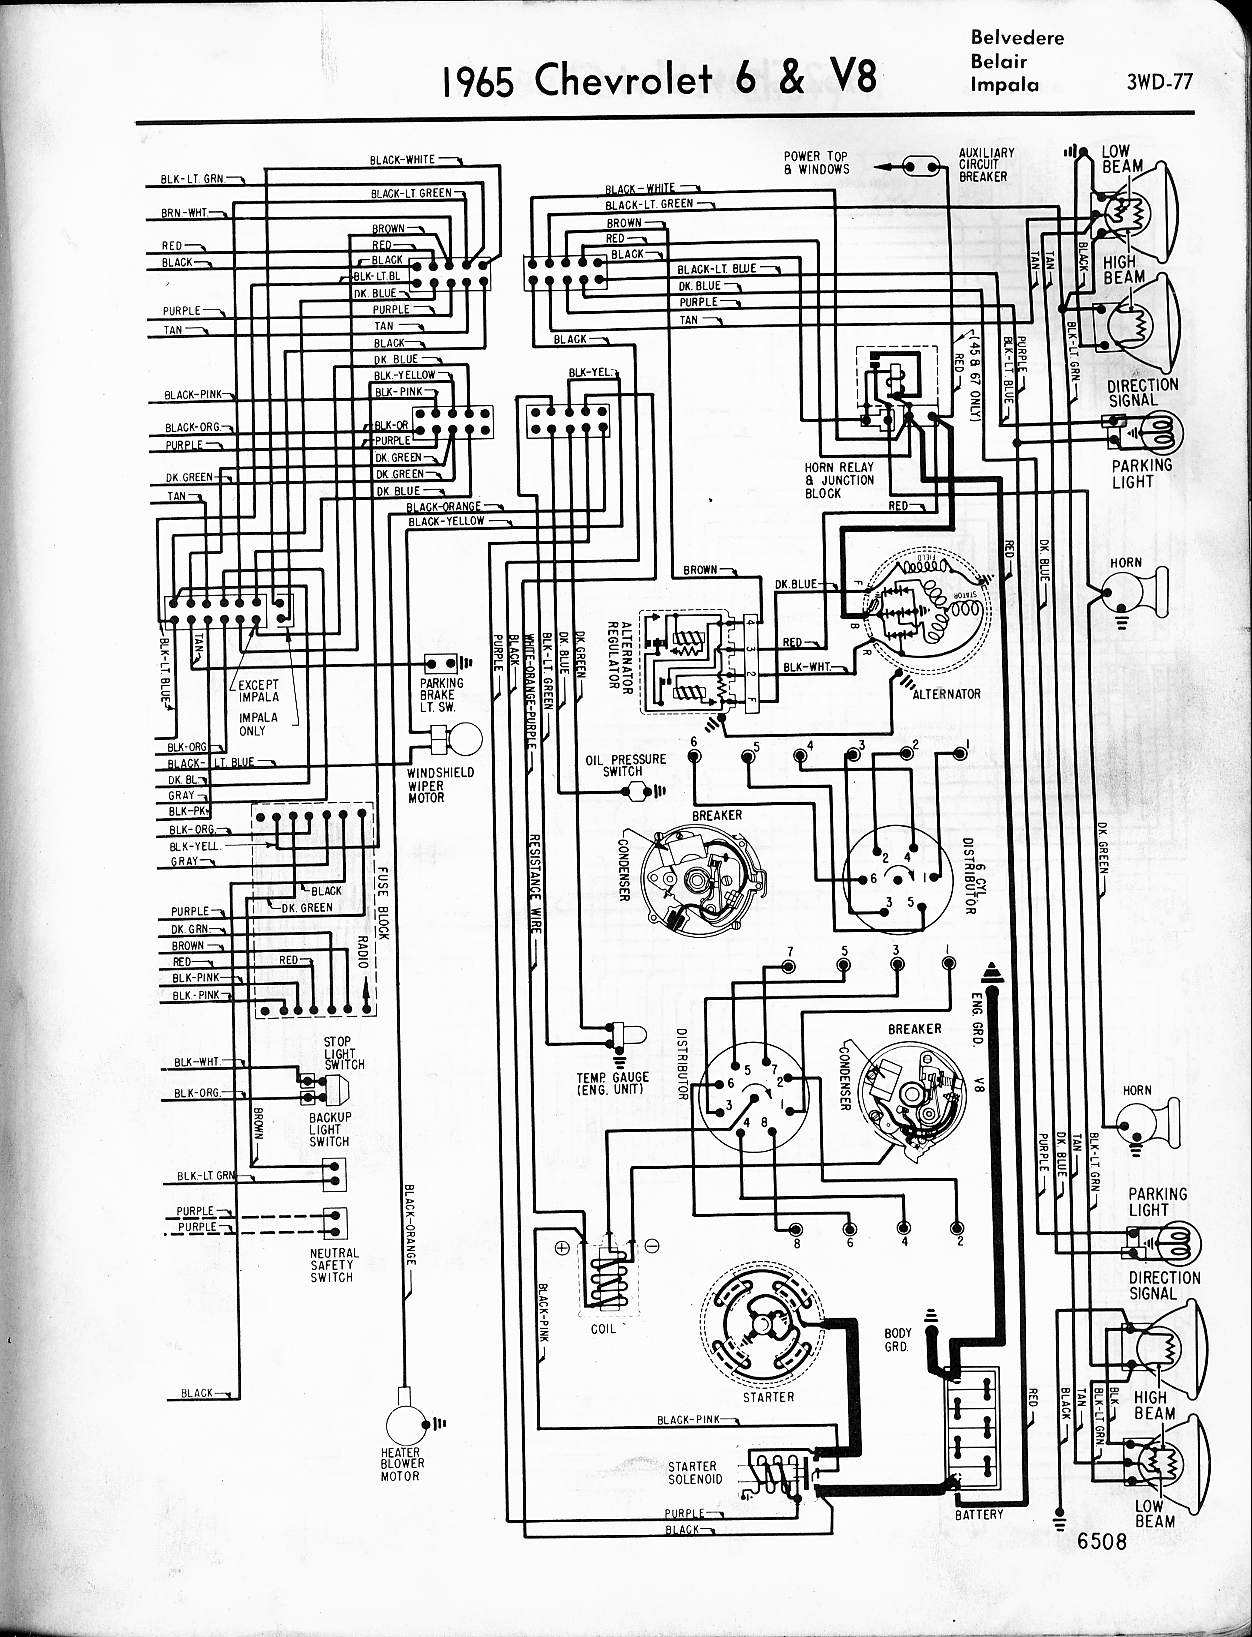 1965 chevy chevelle wiring diagram zxlmvgs chevy truck underhood wiring diagrams chuck's chevy truck pages 1985 Chevy Truck Wiring Harness at webbmarketing.co